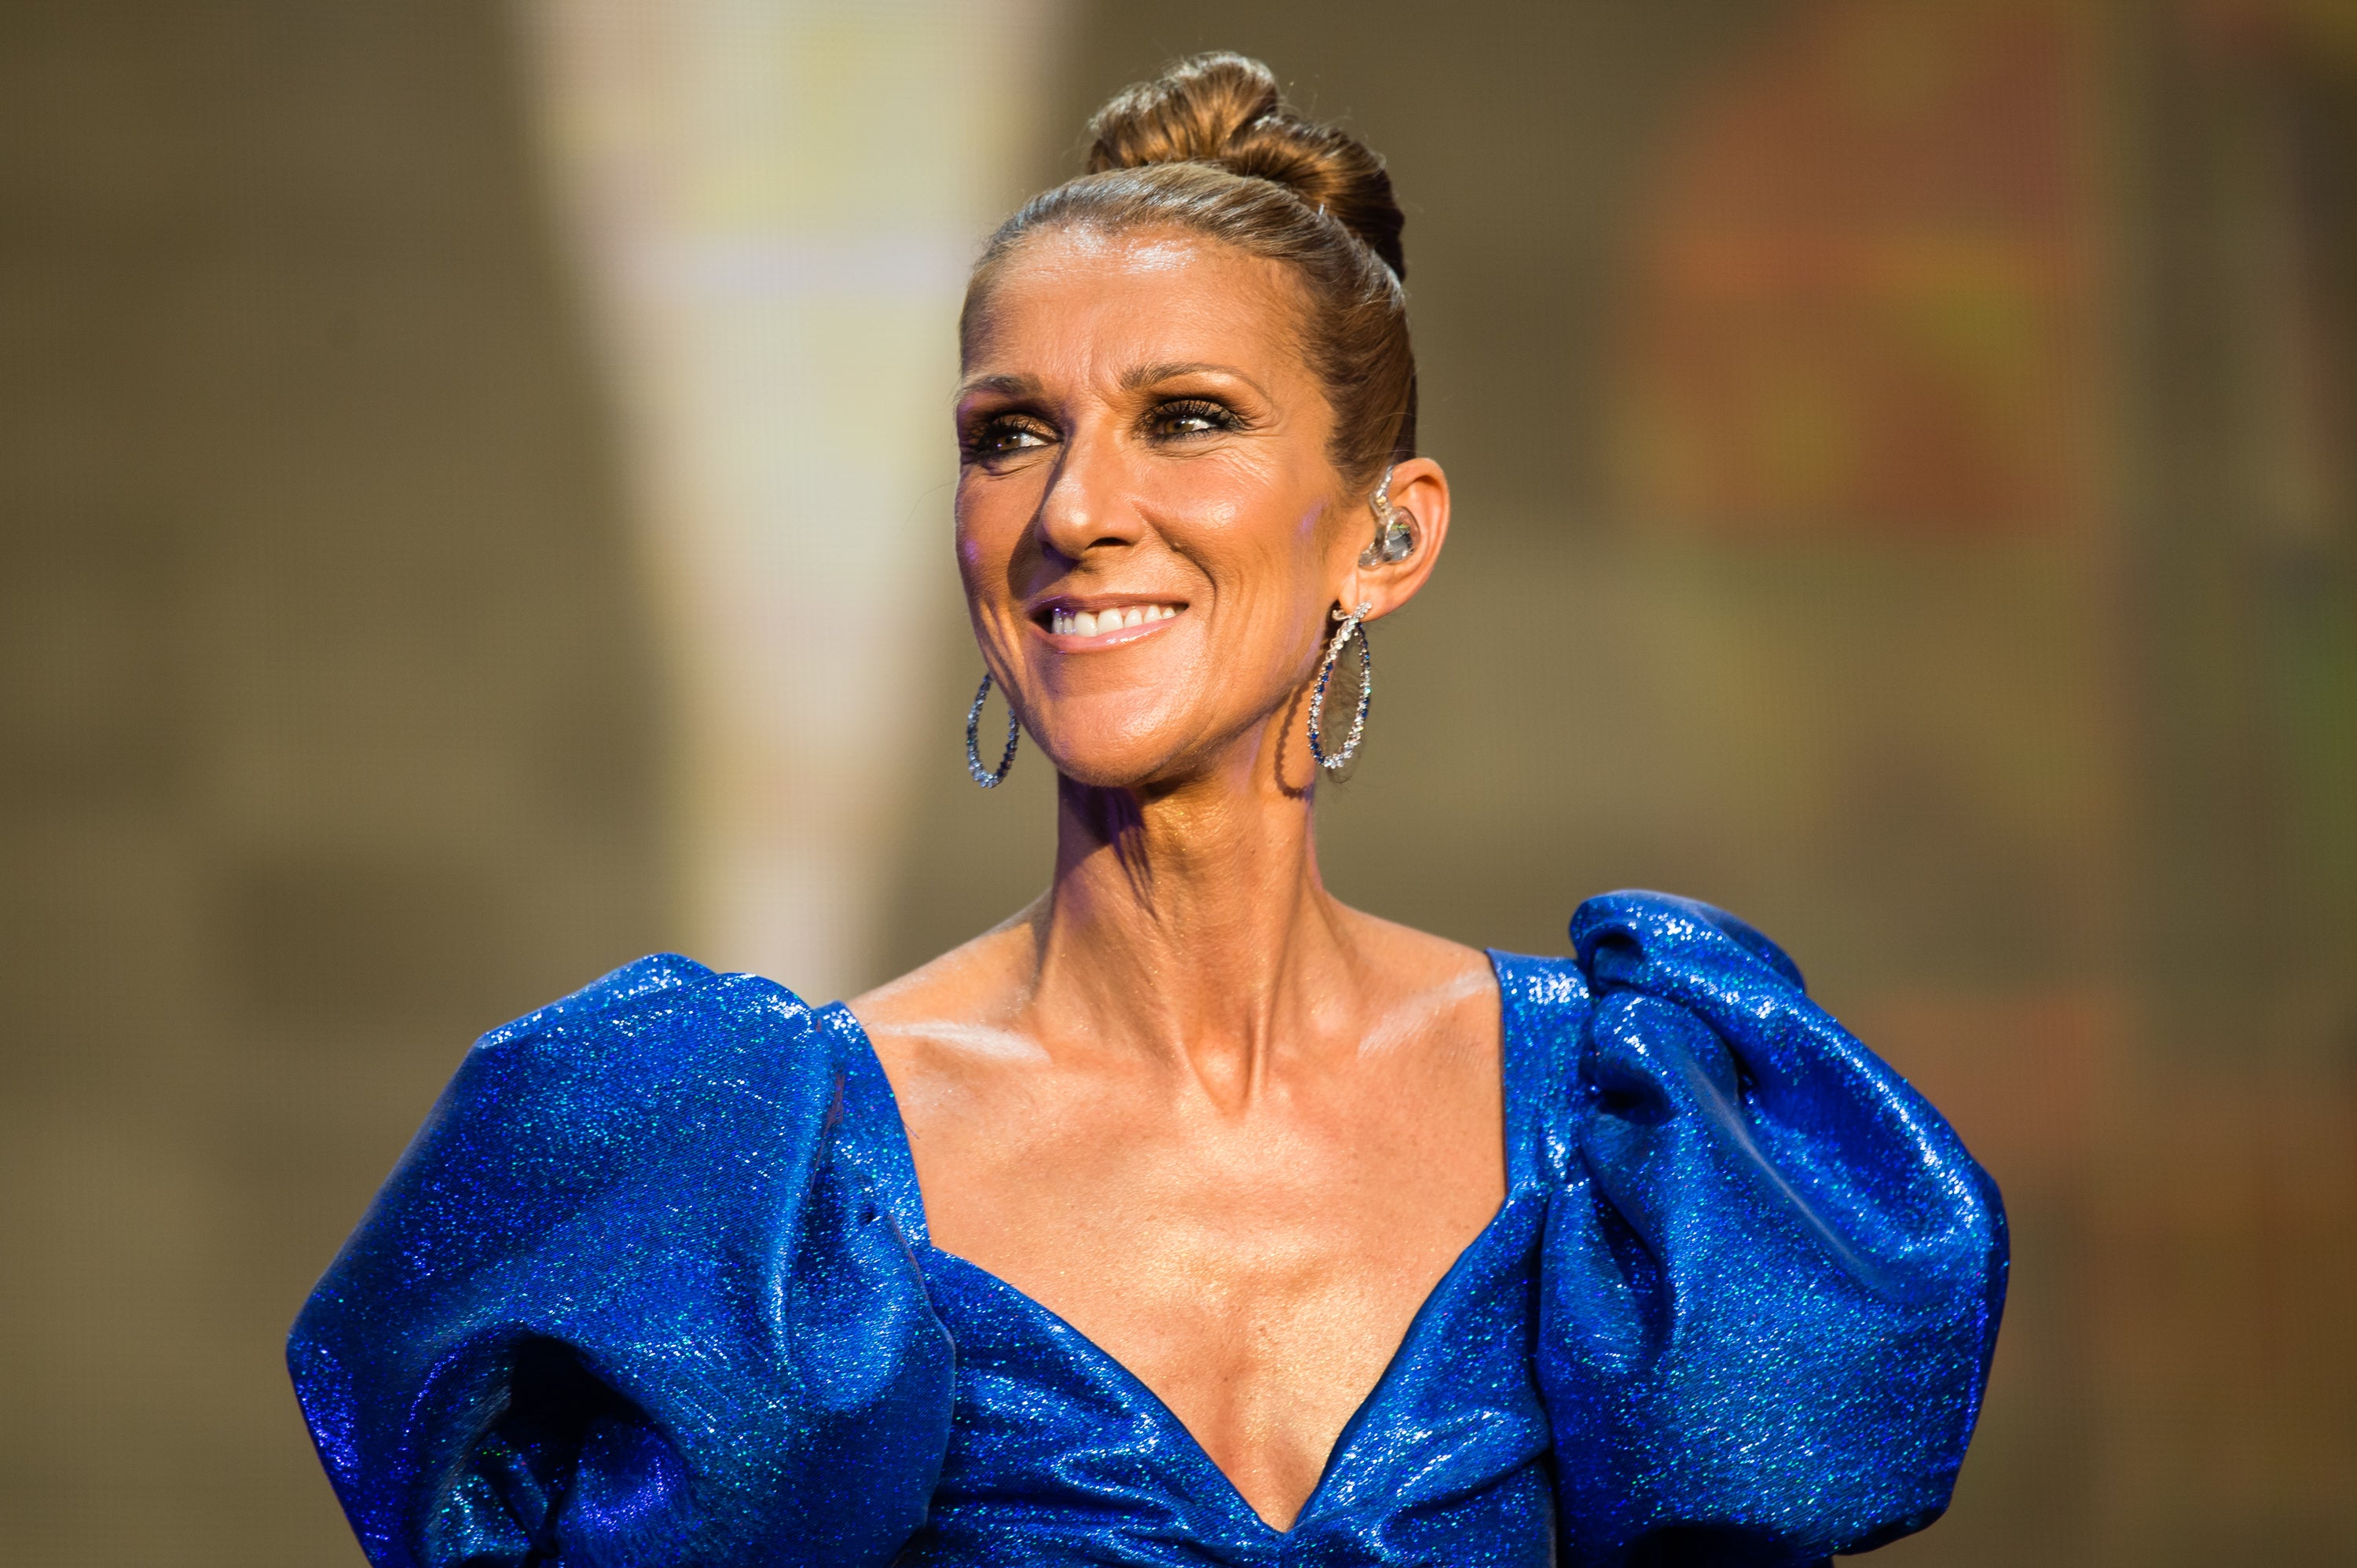 Céline Dion Is Almost Unrecognizable With New Bowl Cut -- See the Unique Look